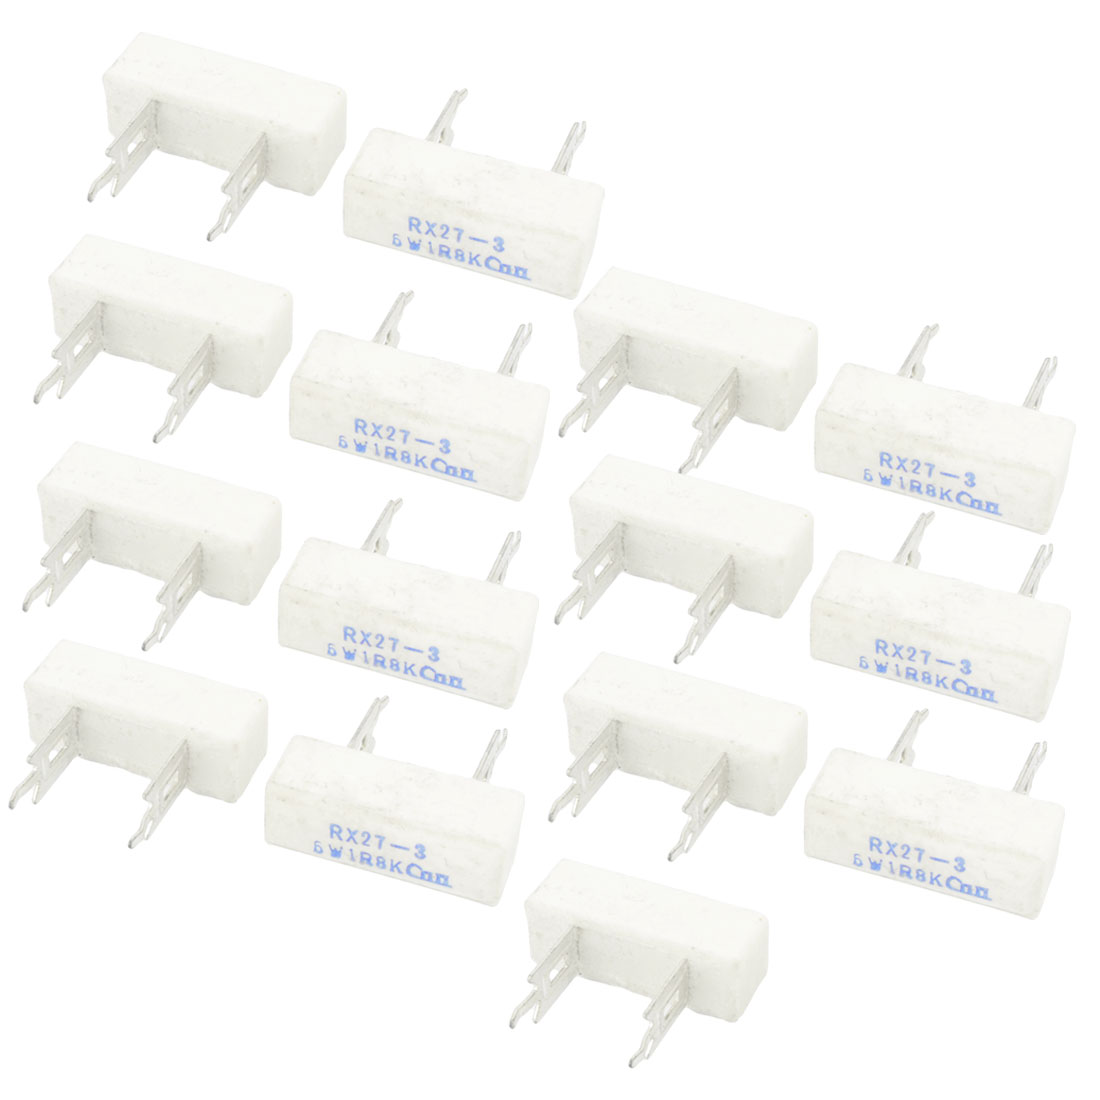 15 Pcs 6W 1.8 Ohm 10% Tolerance DIP Mounting Fixed Wire Wound Ceramic Cement Power Resistor